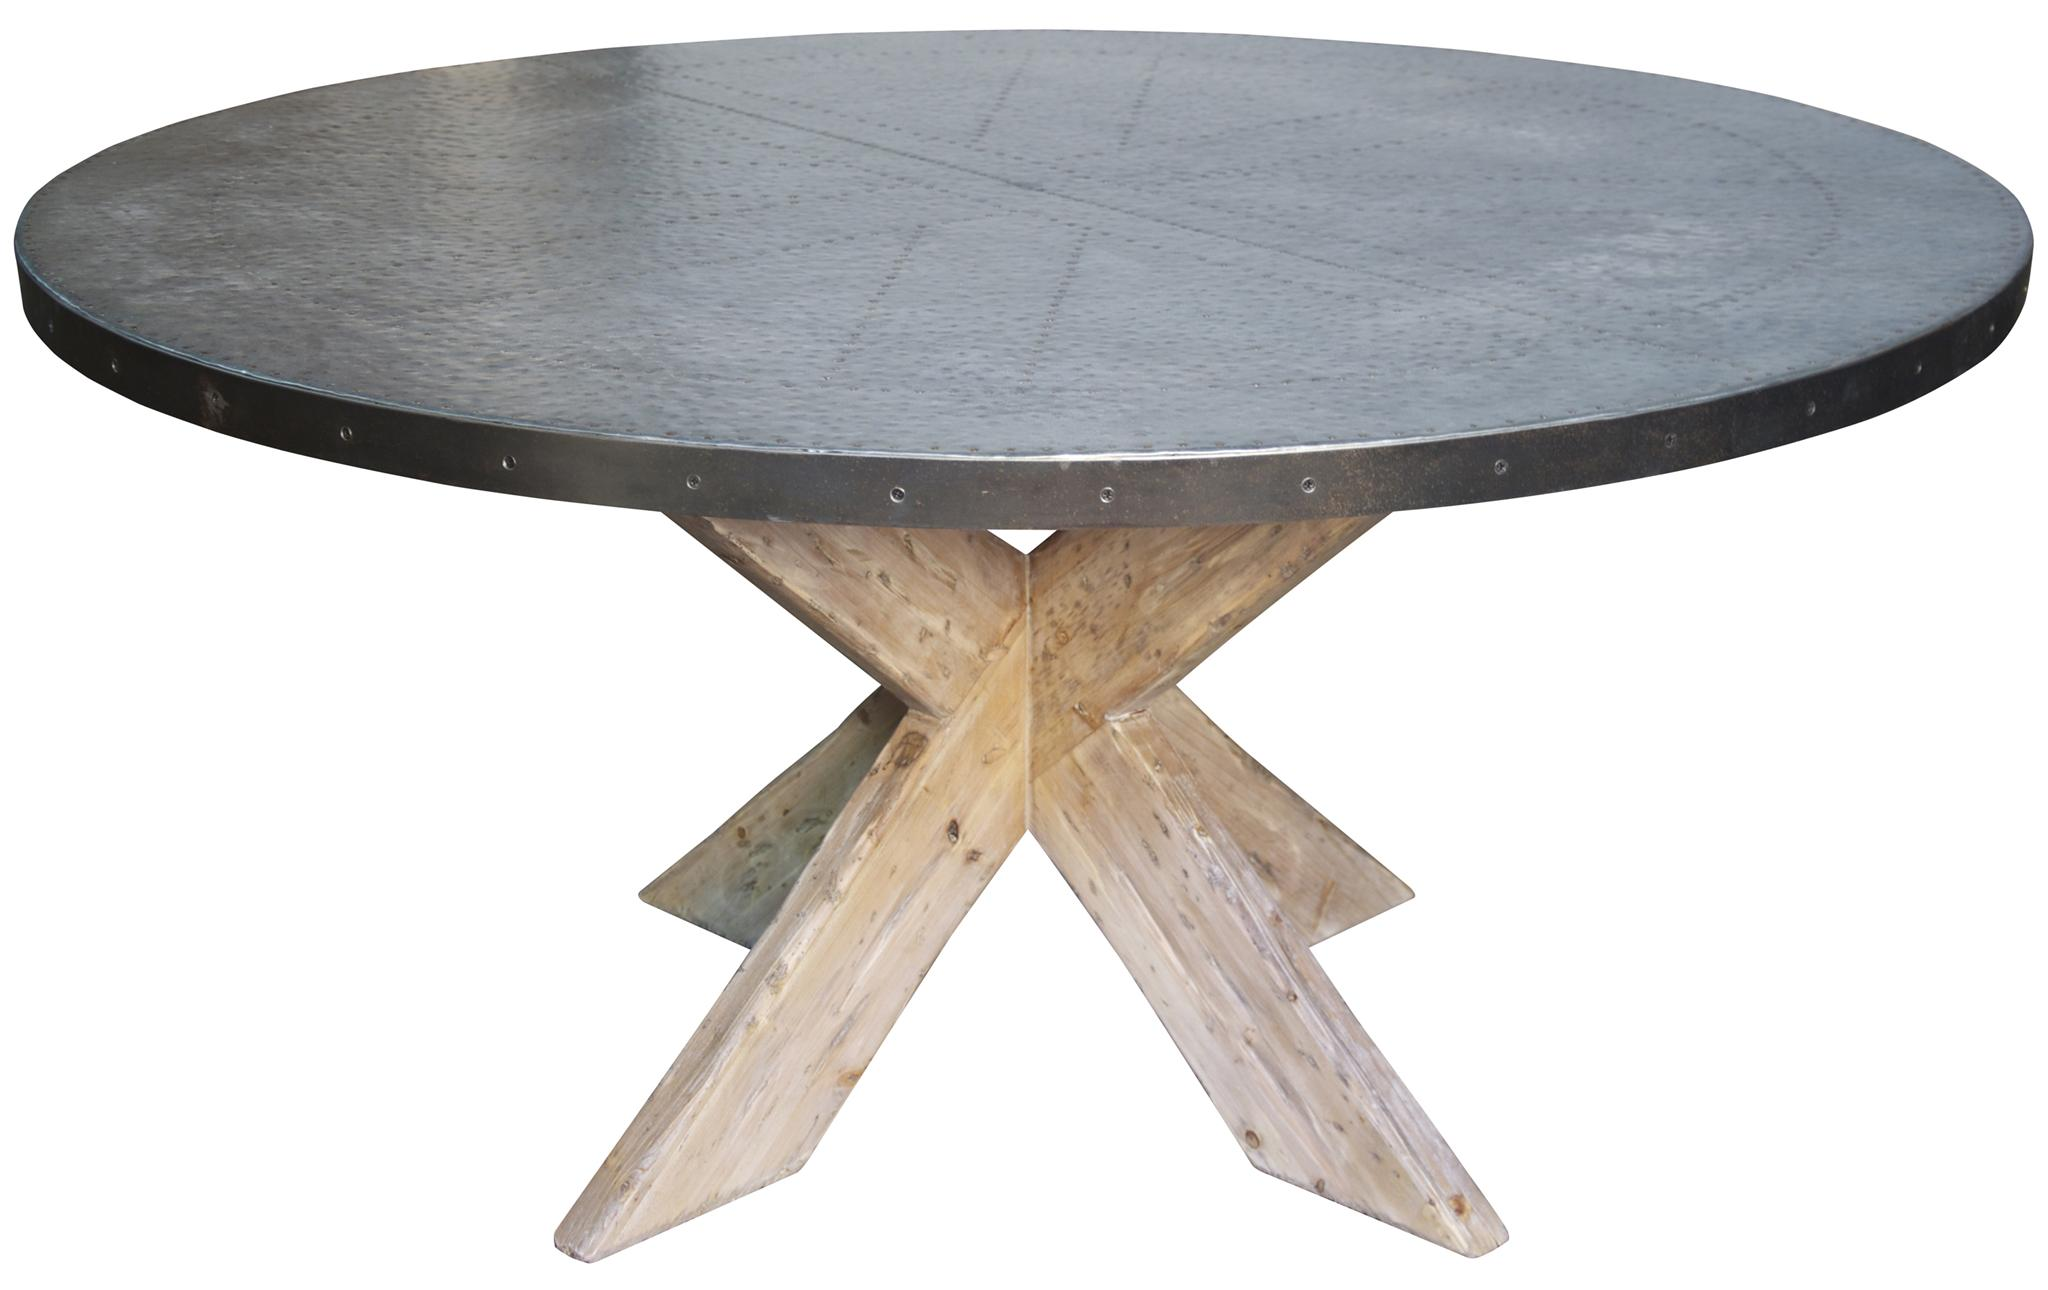 view larger image - Dining Room Tables Austin